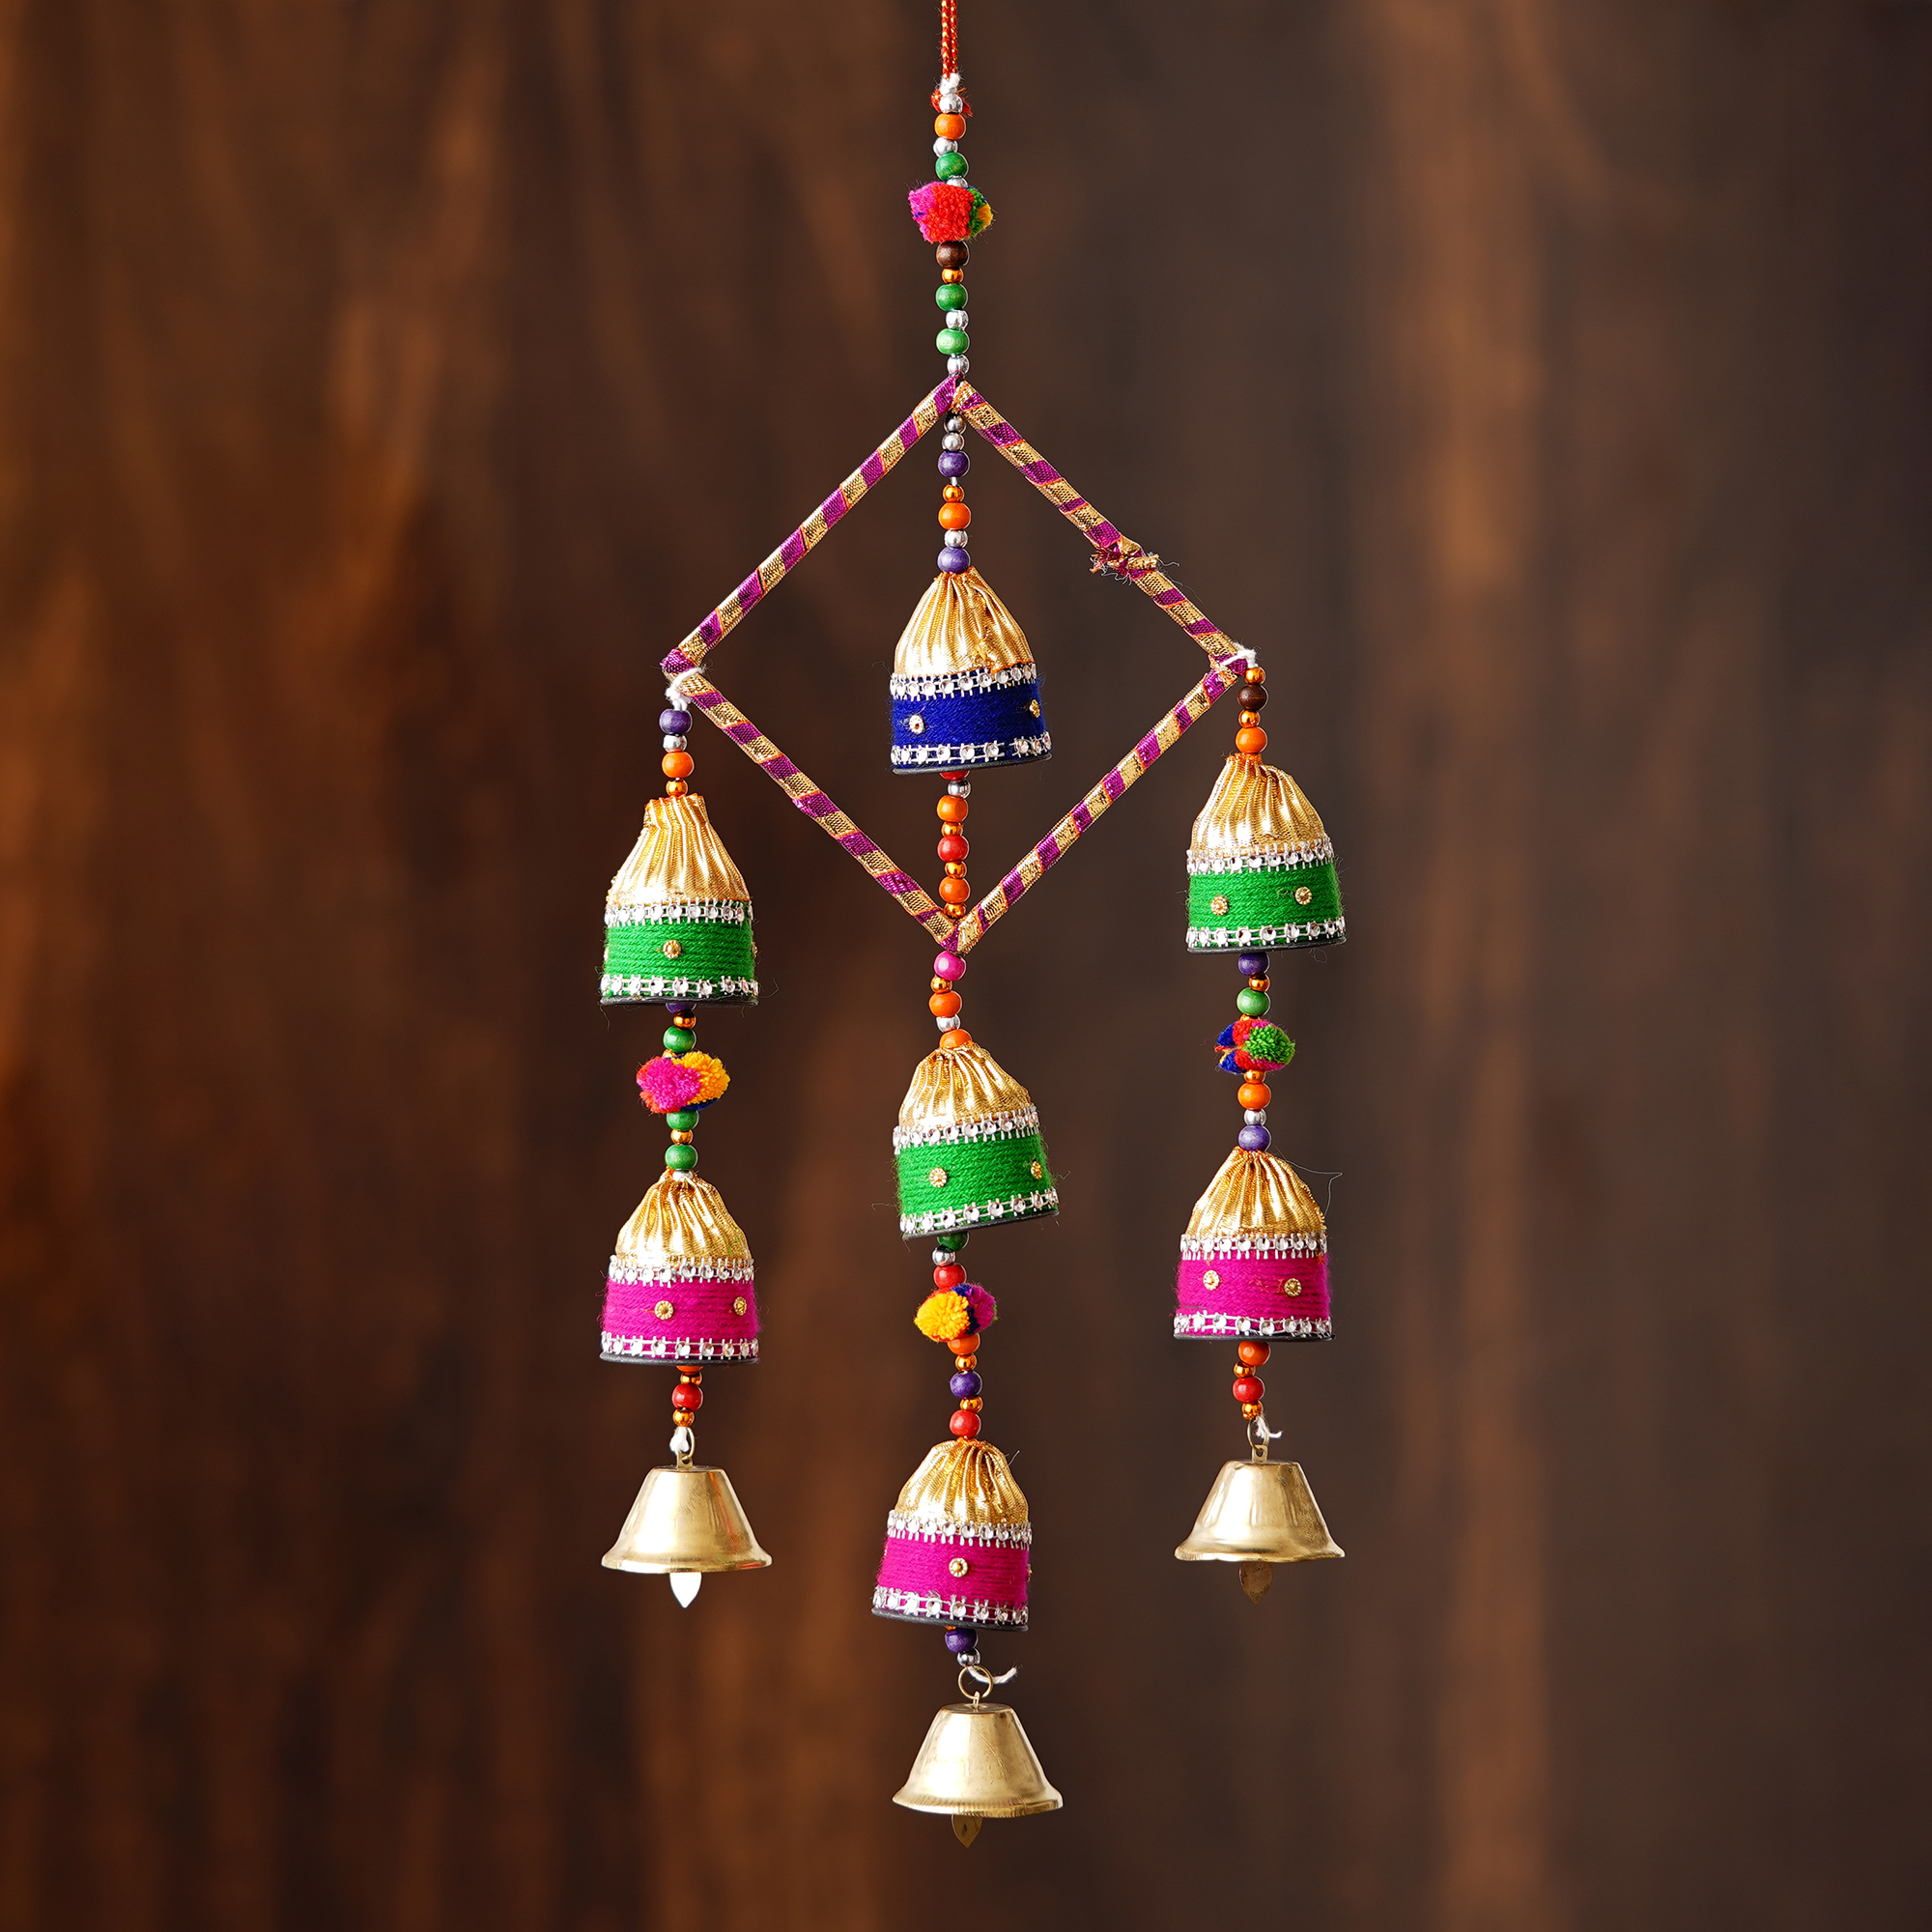 Handcrafted Decorative Colorful Wall/Door/Window Hanging Bells Indian Home Decor